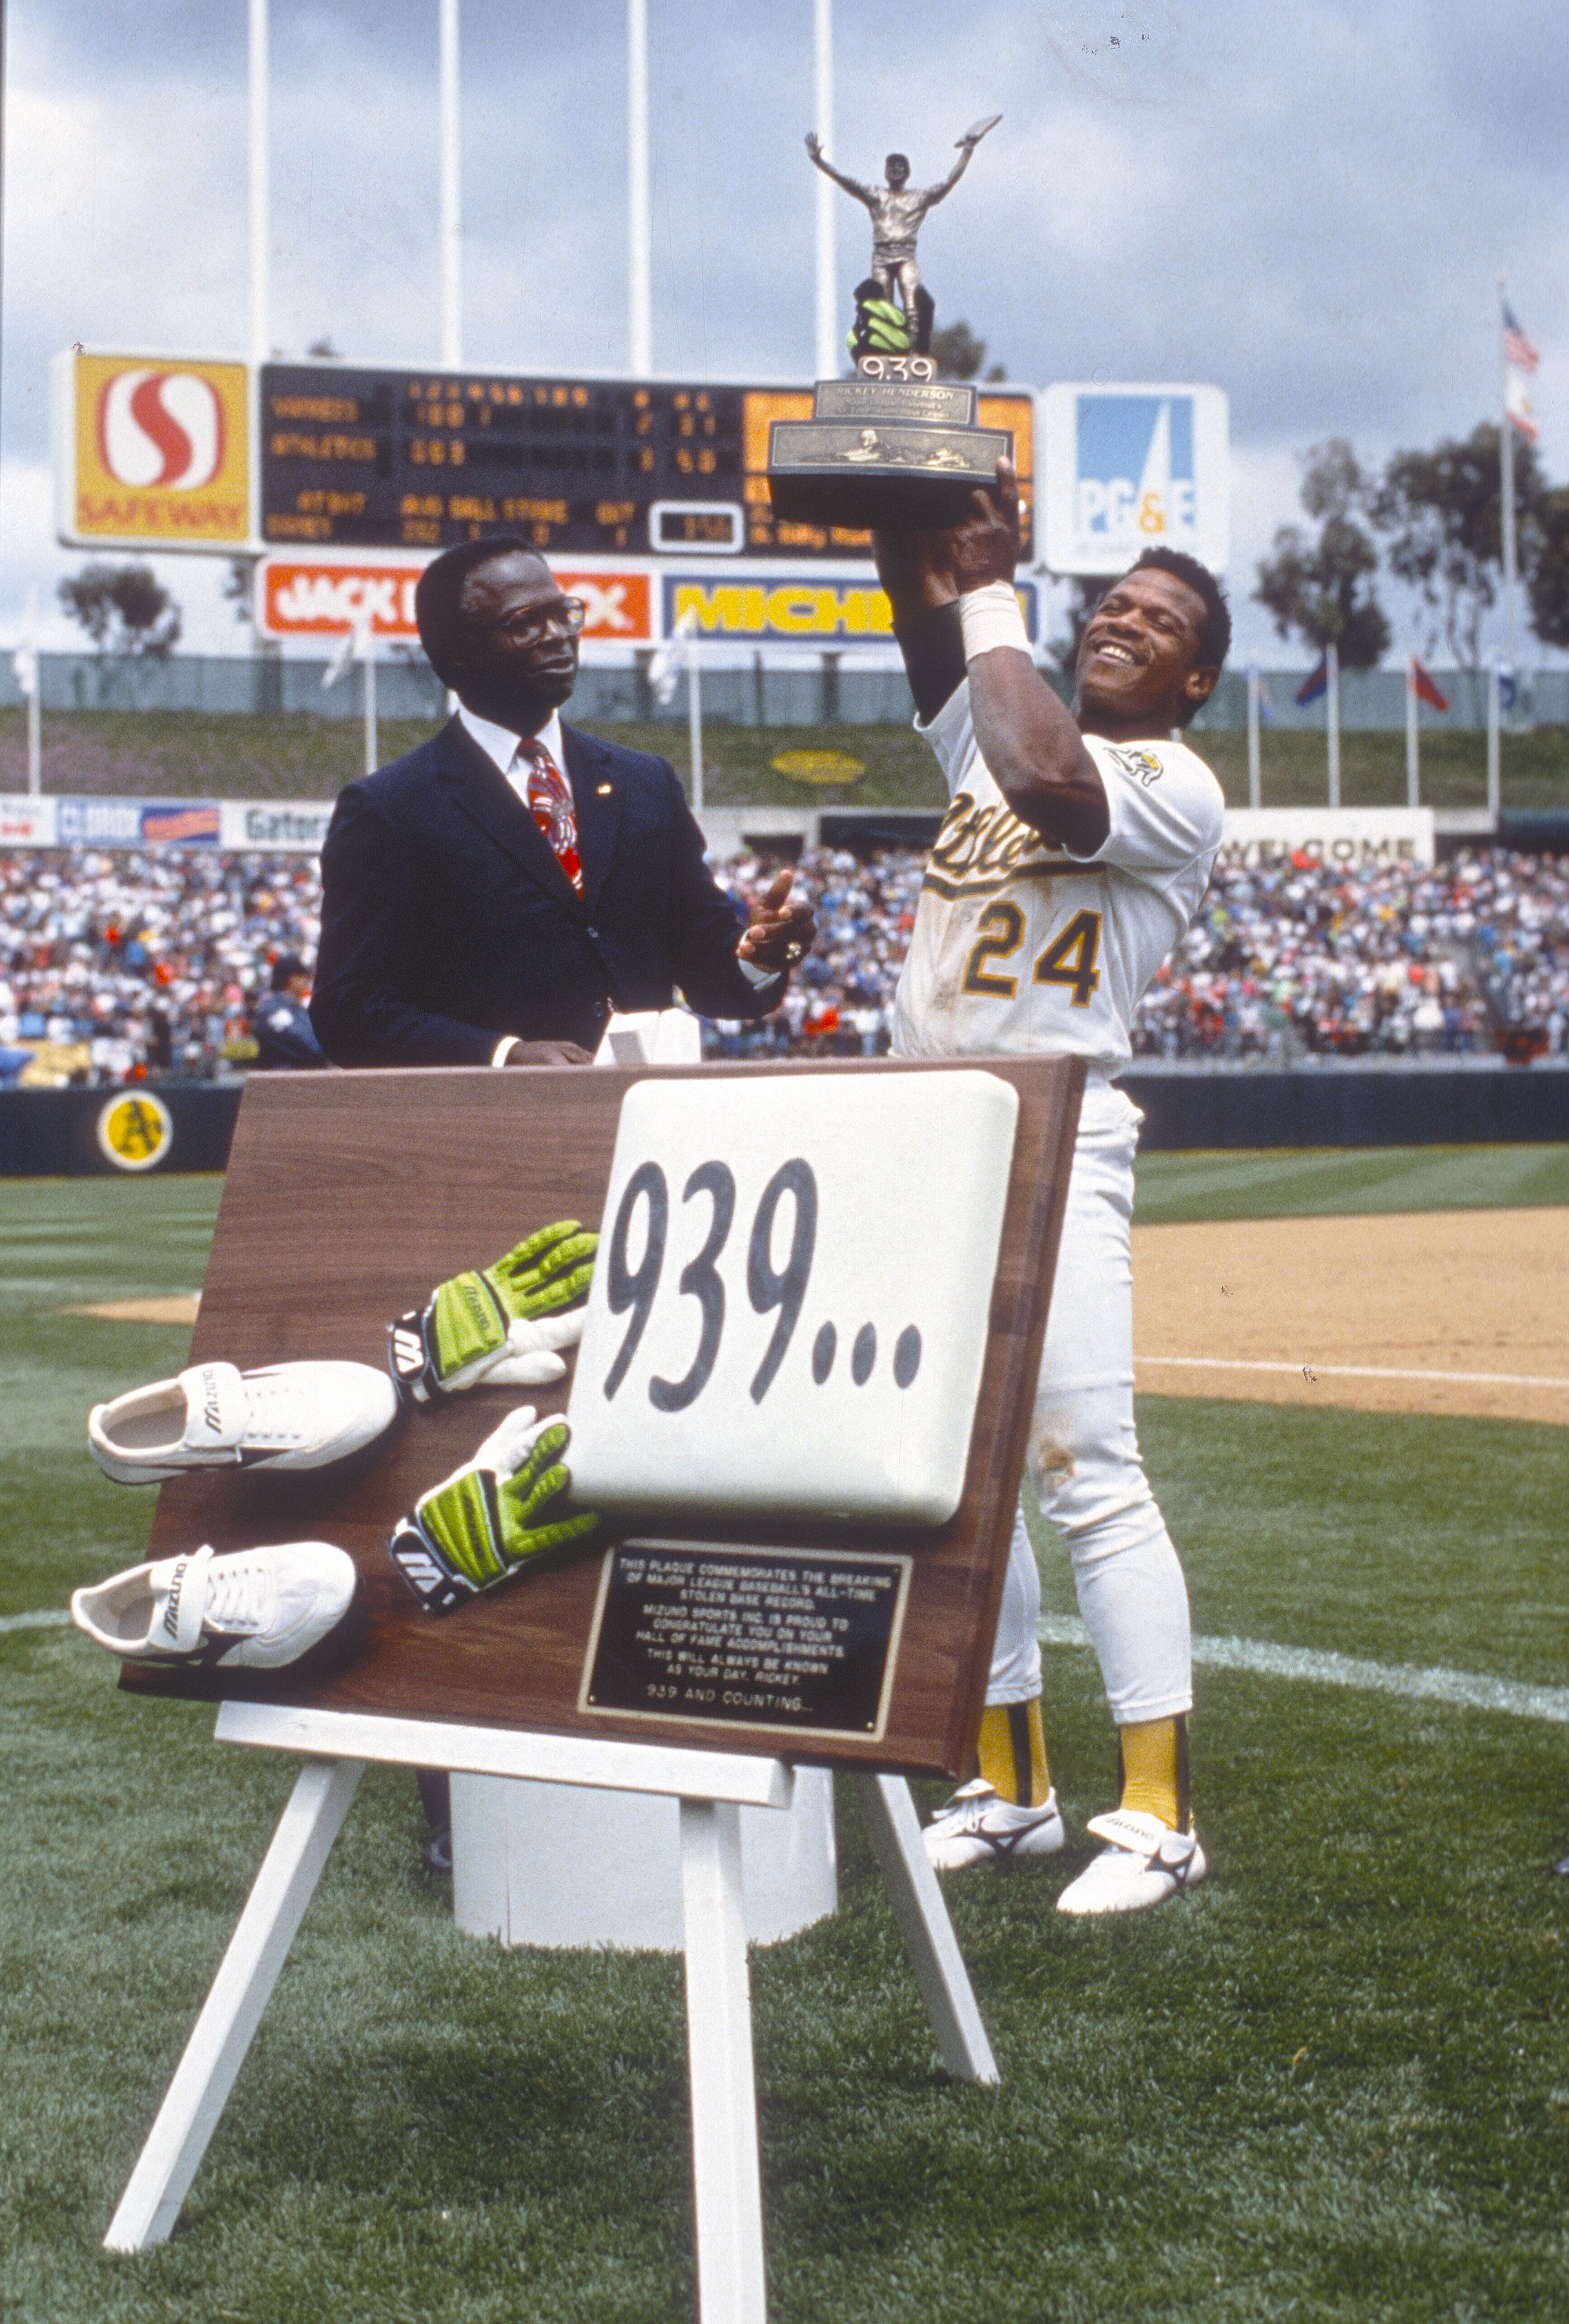 Rickey Henderson on the day he set the stolen base record